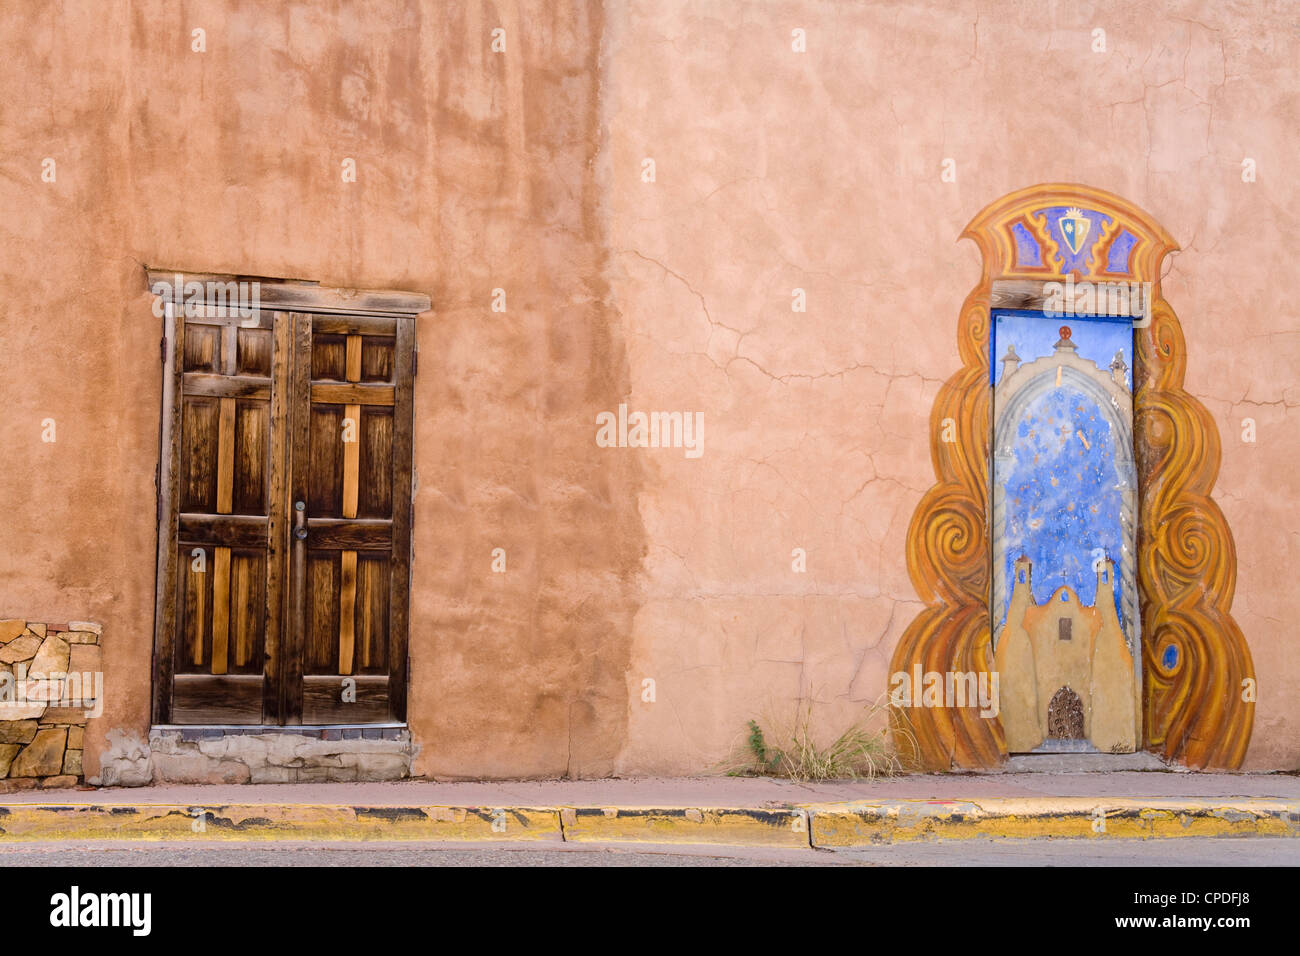 Doors in Santa Fe, New Mexico, United States of America, North America - Stock Image